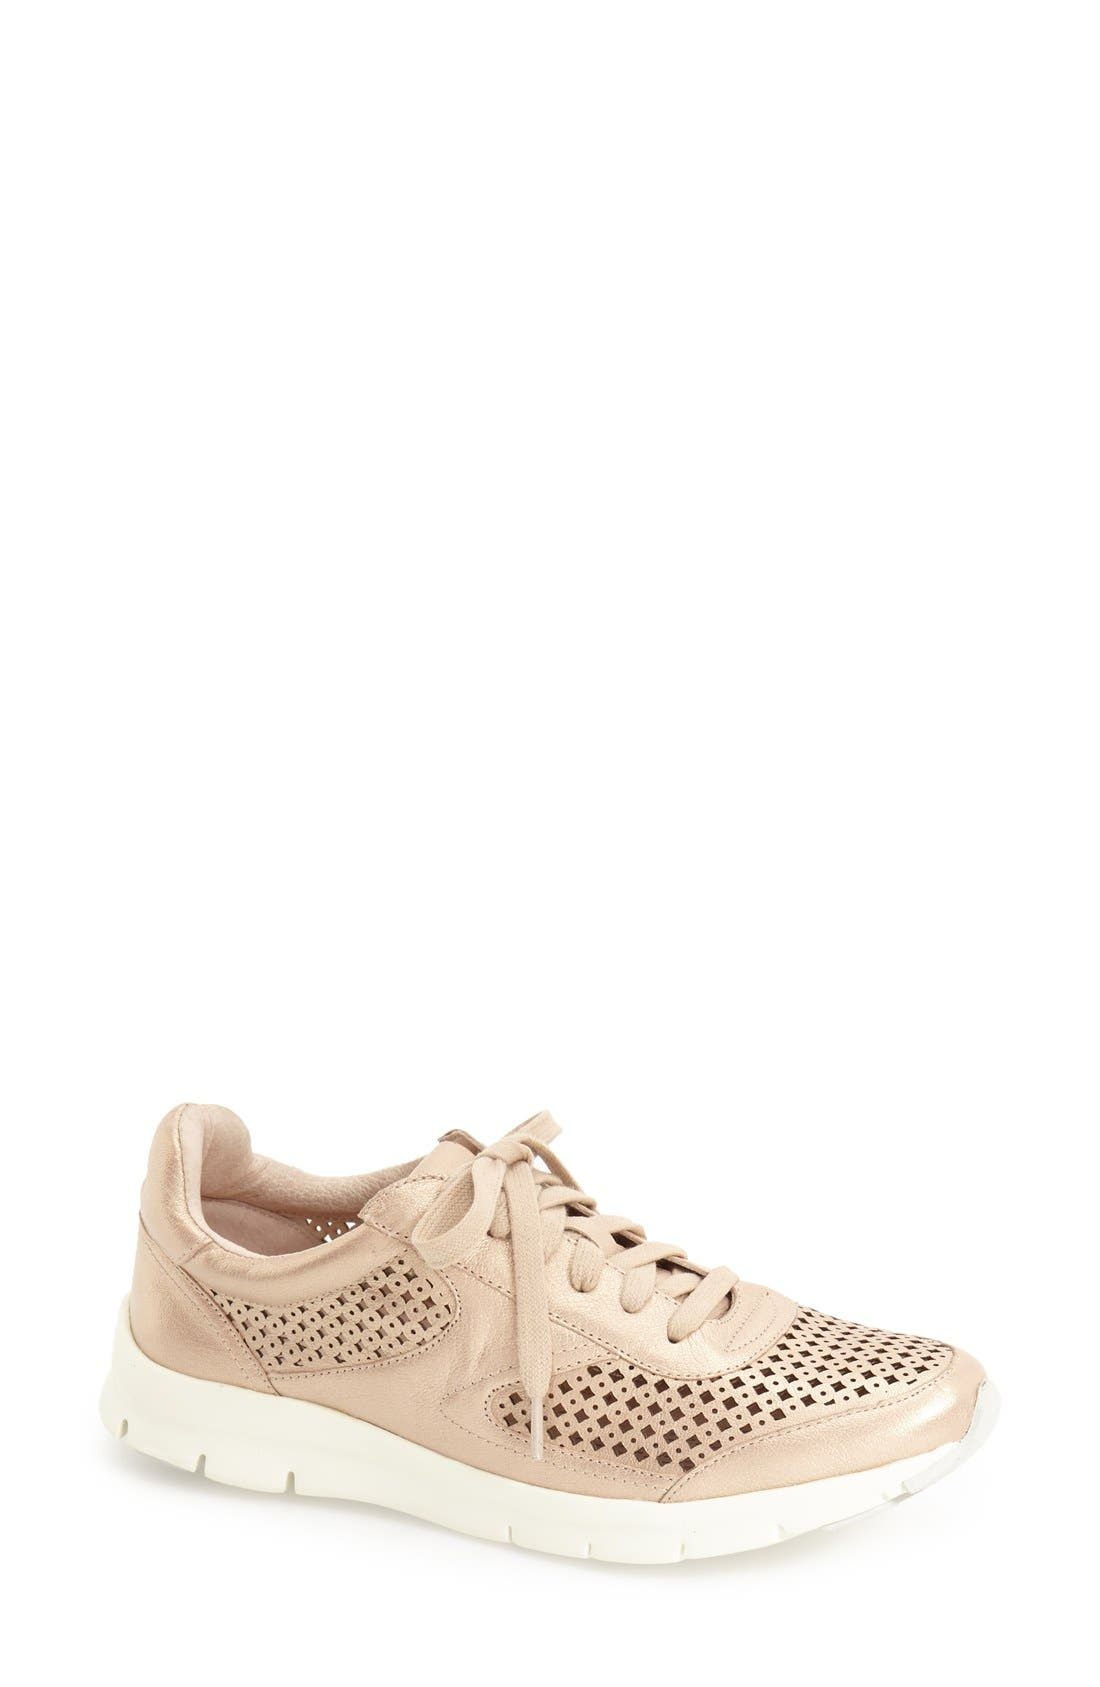 Sudini 'Tammi' Perforated Leather Sneaker (Women)